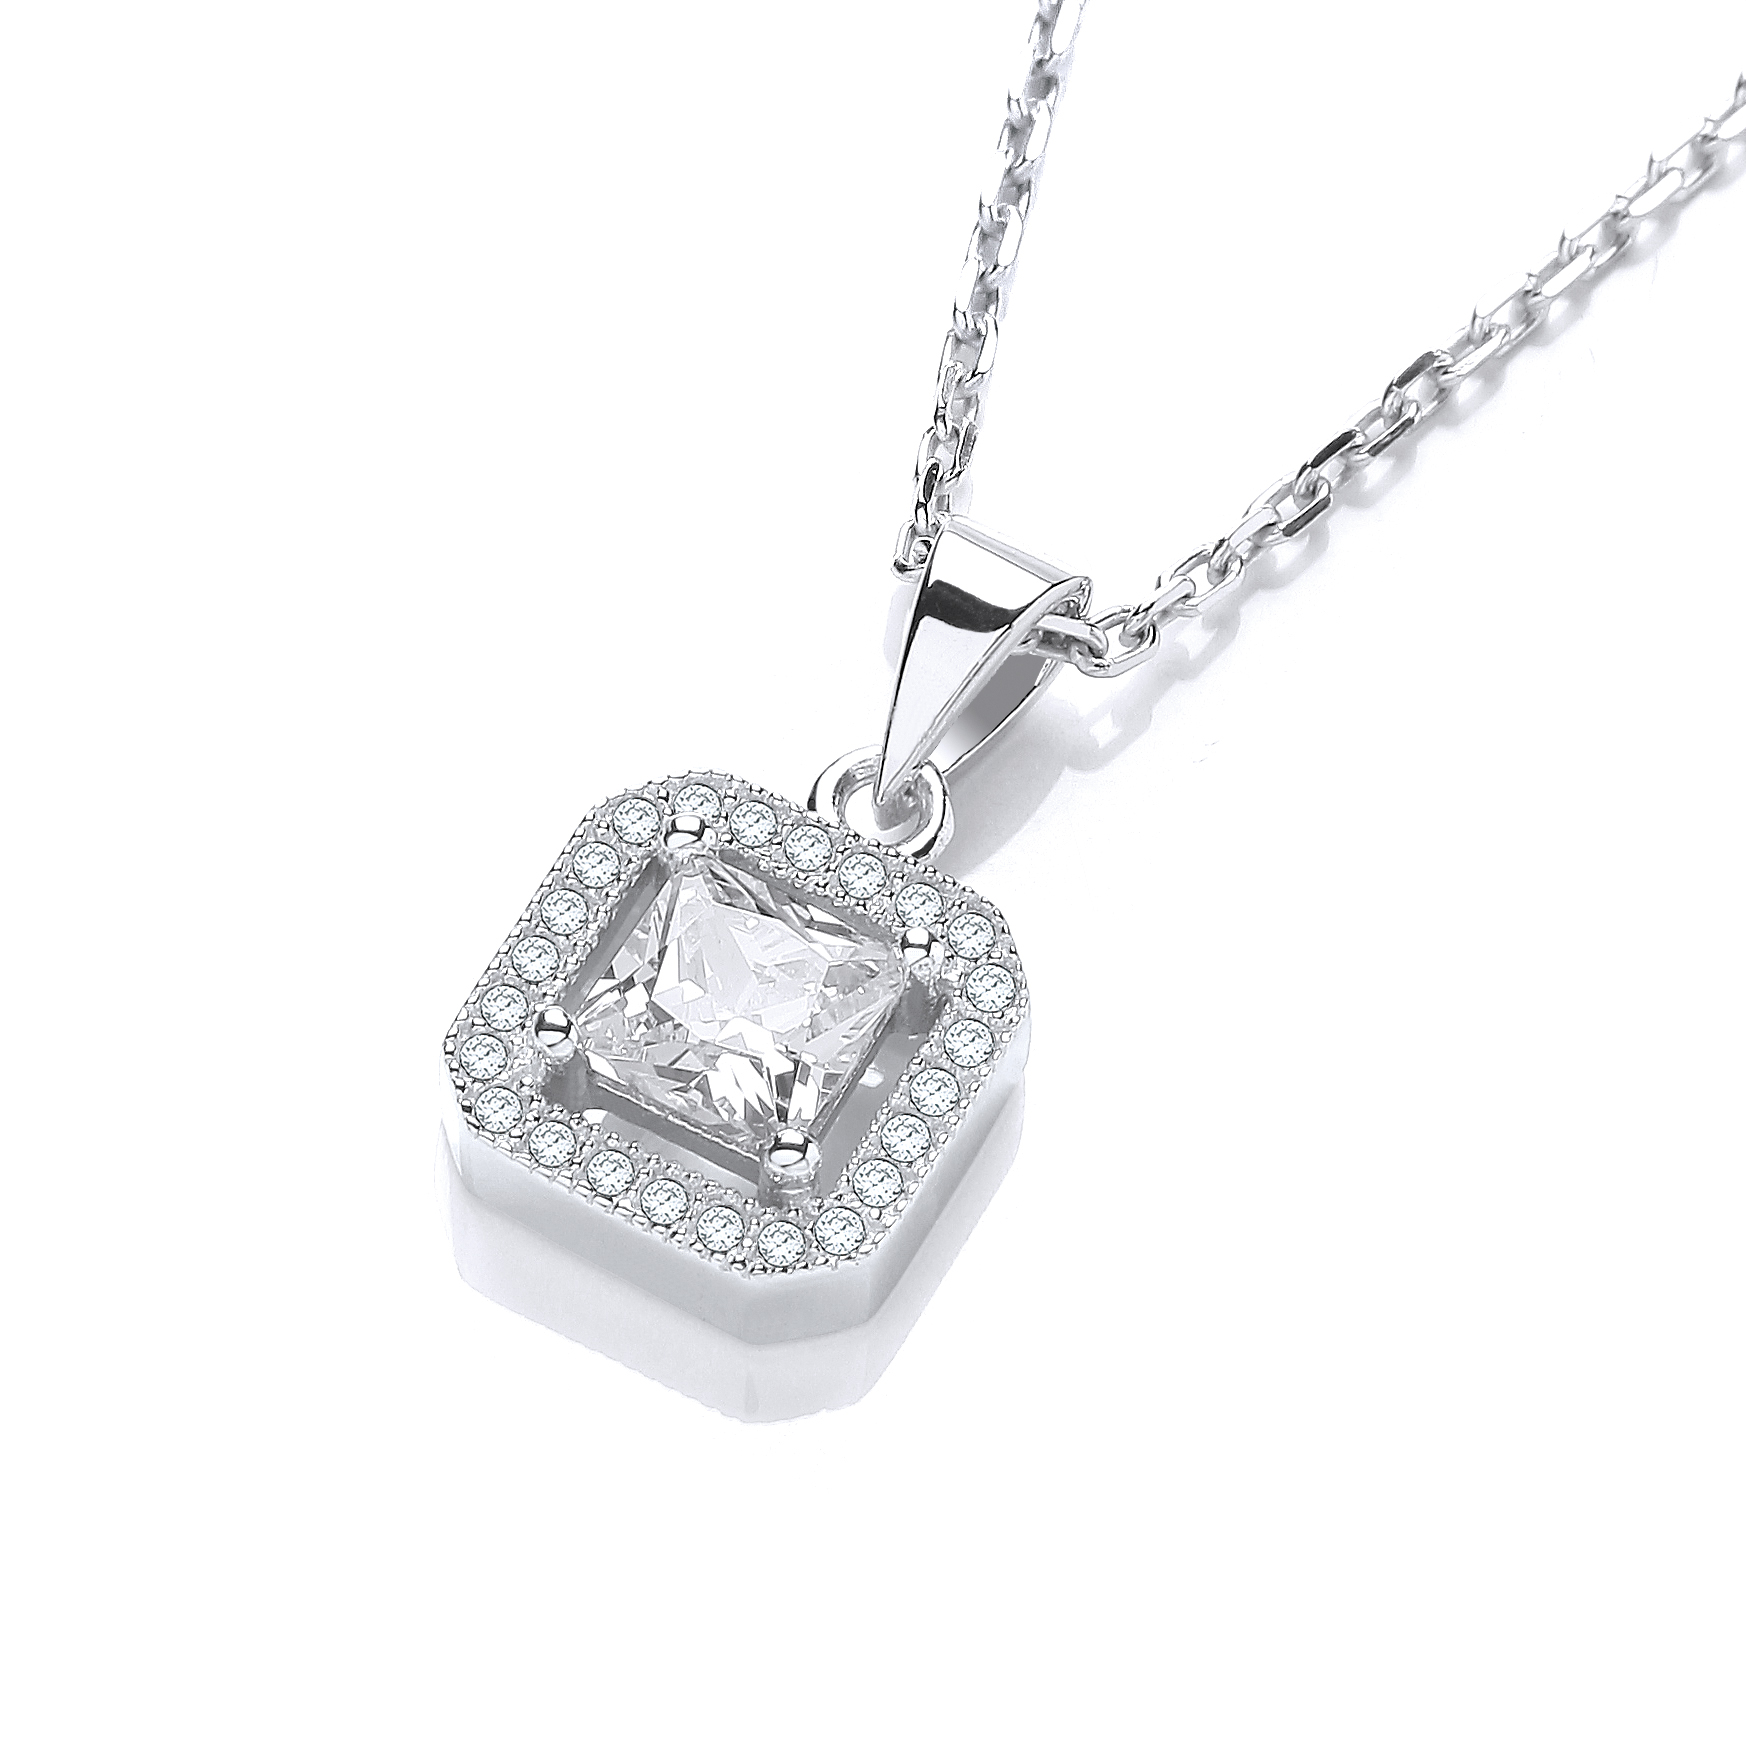 2fb43932a INGRID - HEXYO London Jewellery Gifts For Women